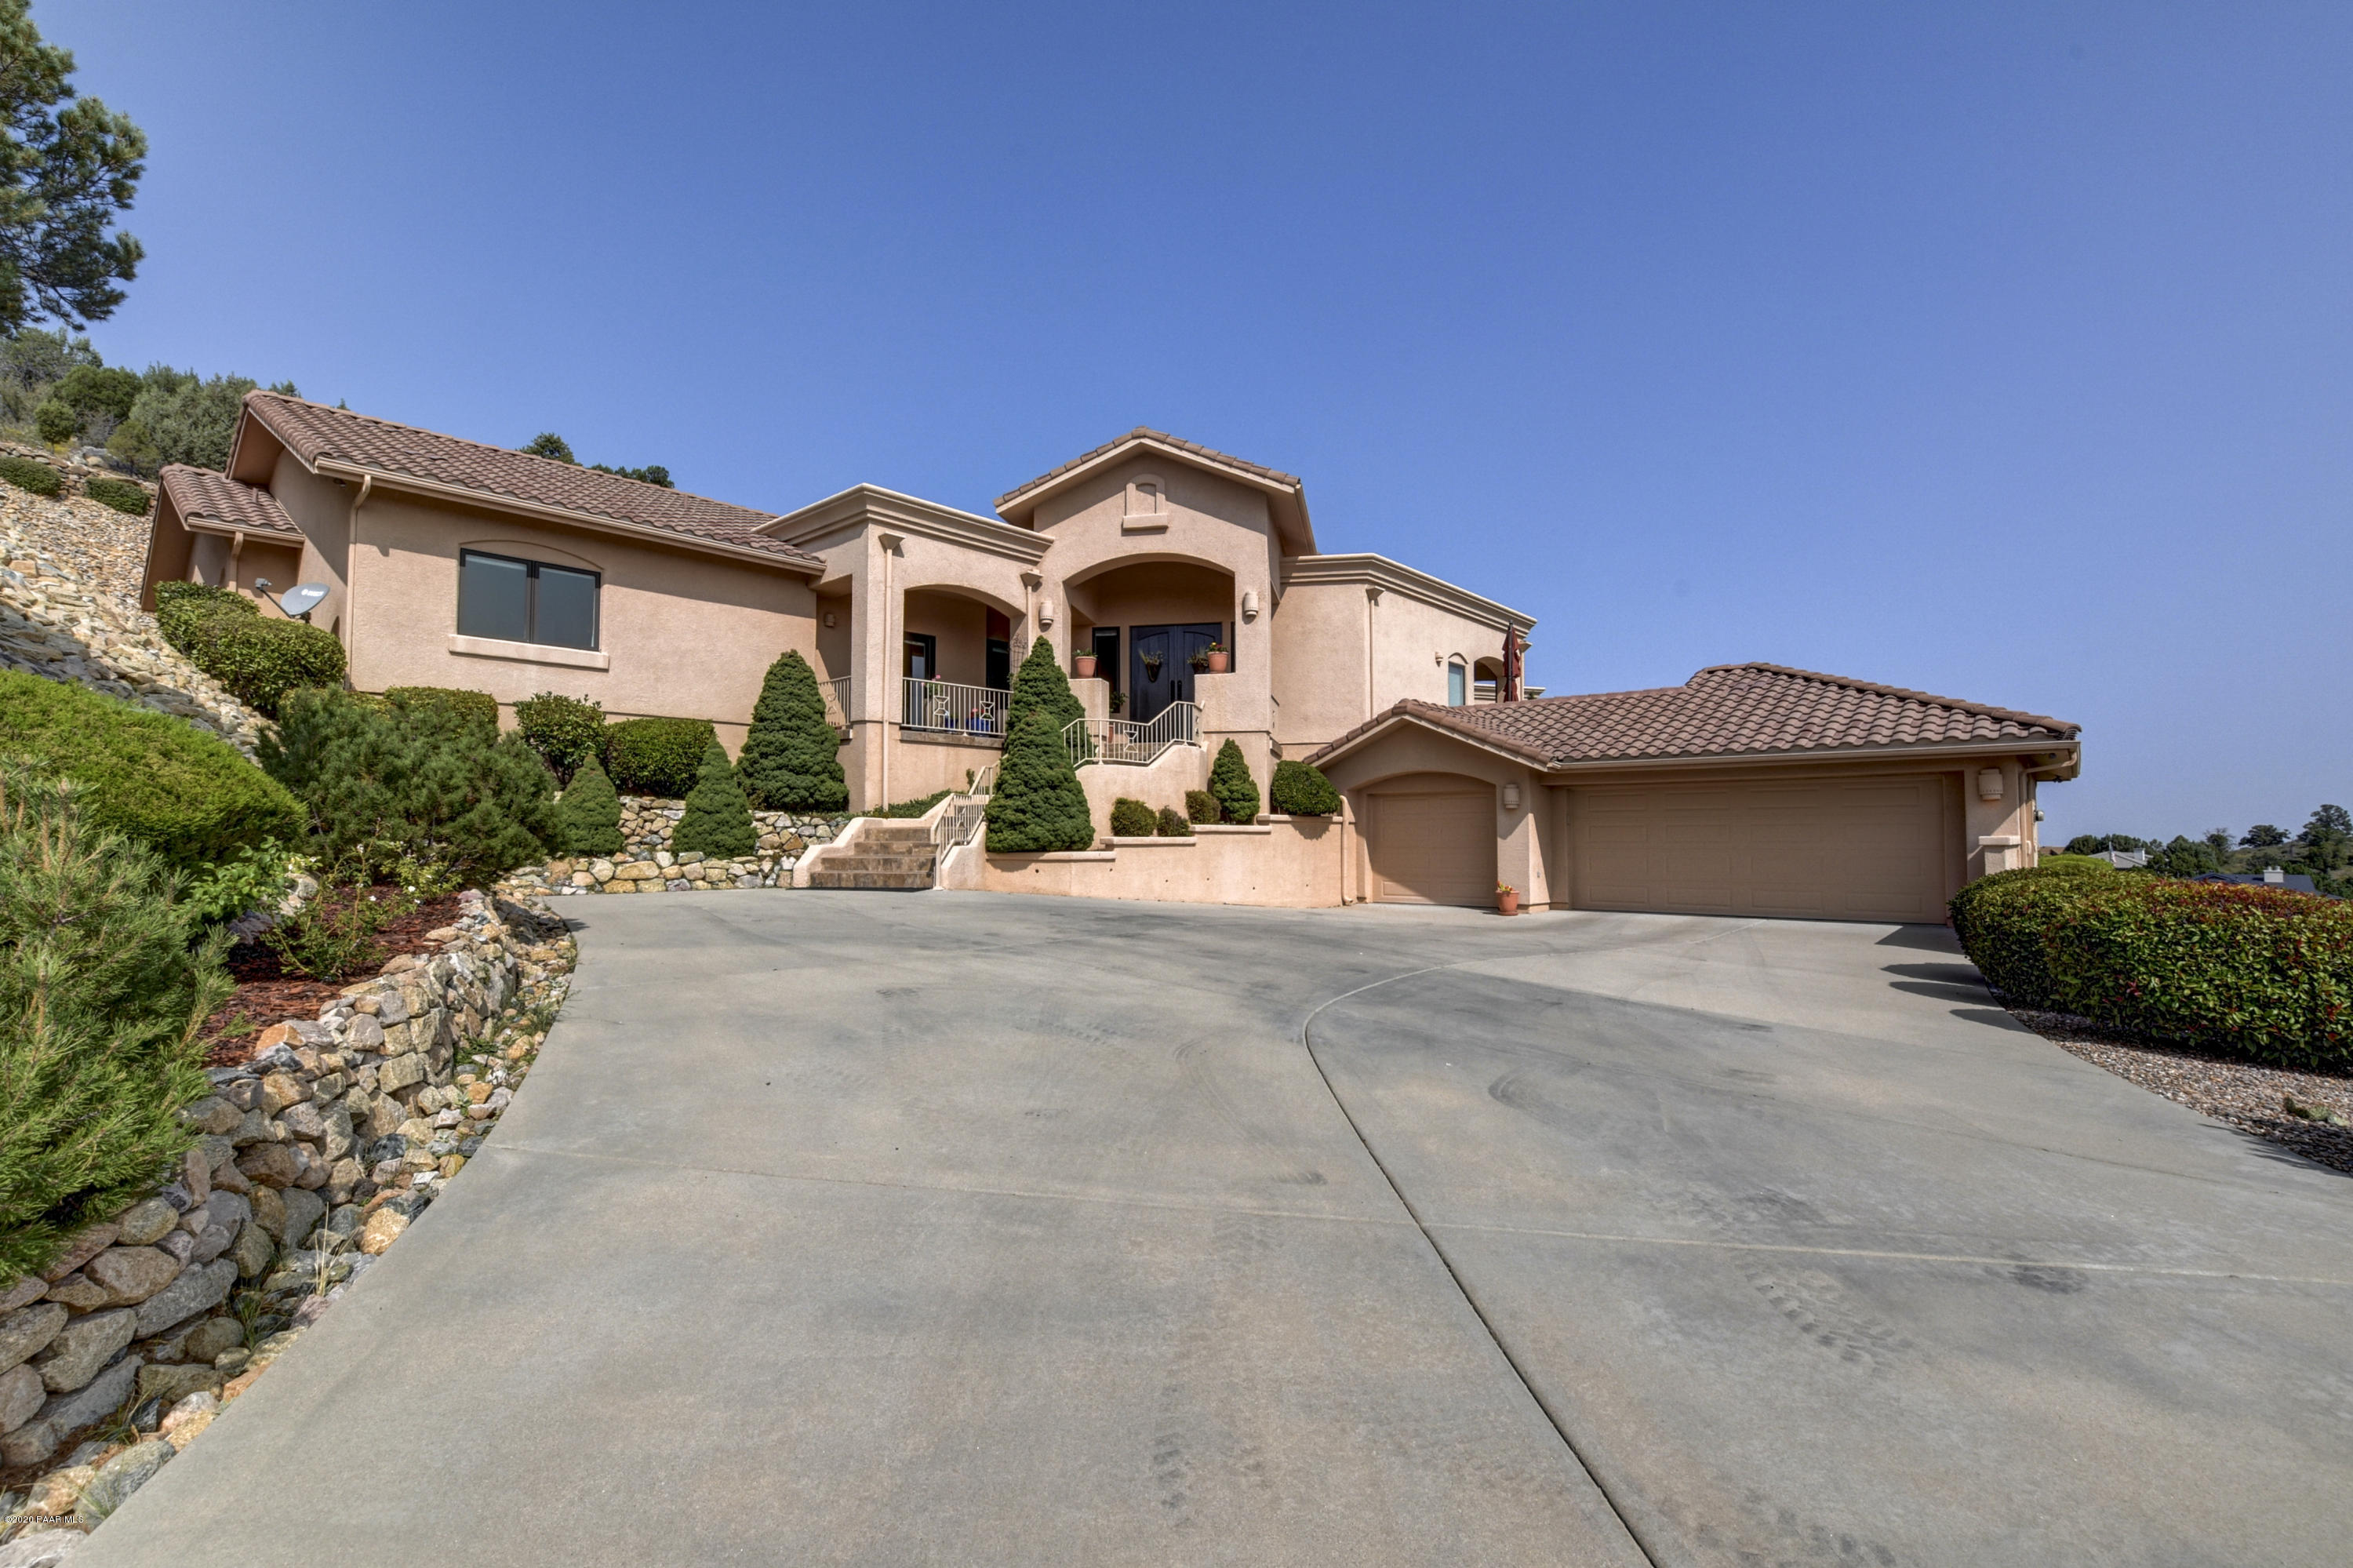 Photo of 3135 Rainbow Ridge, Prescott, AZ 86303